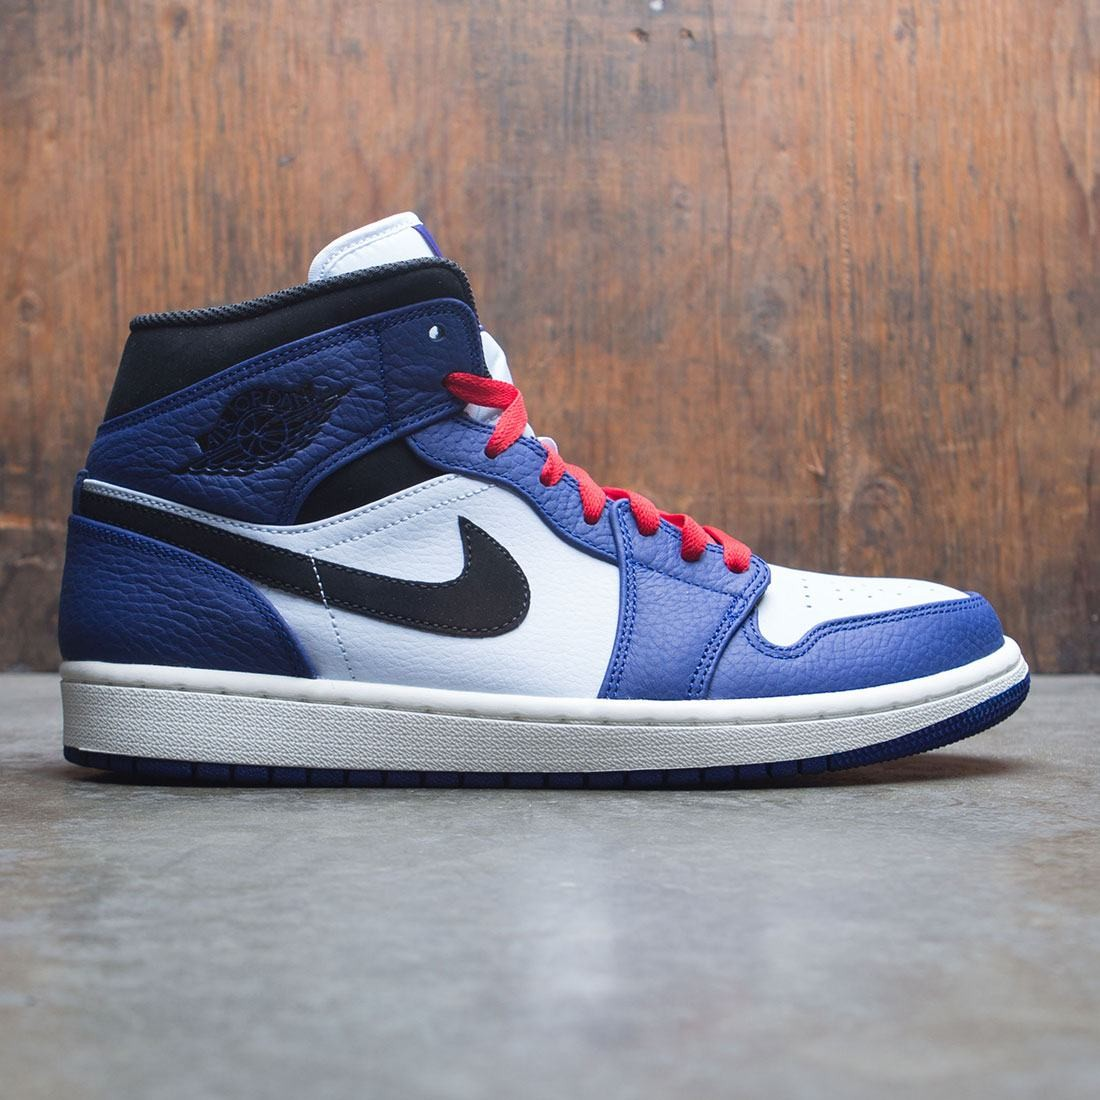 275443c466a459 jordan men air jordan 1 mid se deep royal blue black half blue